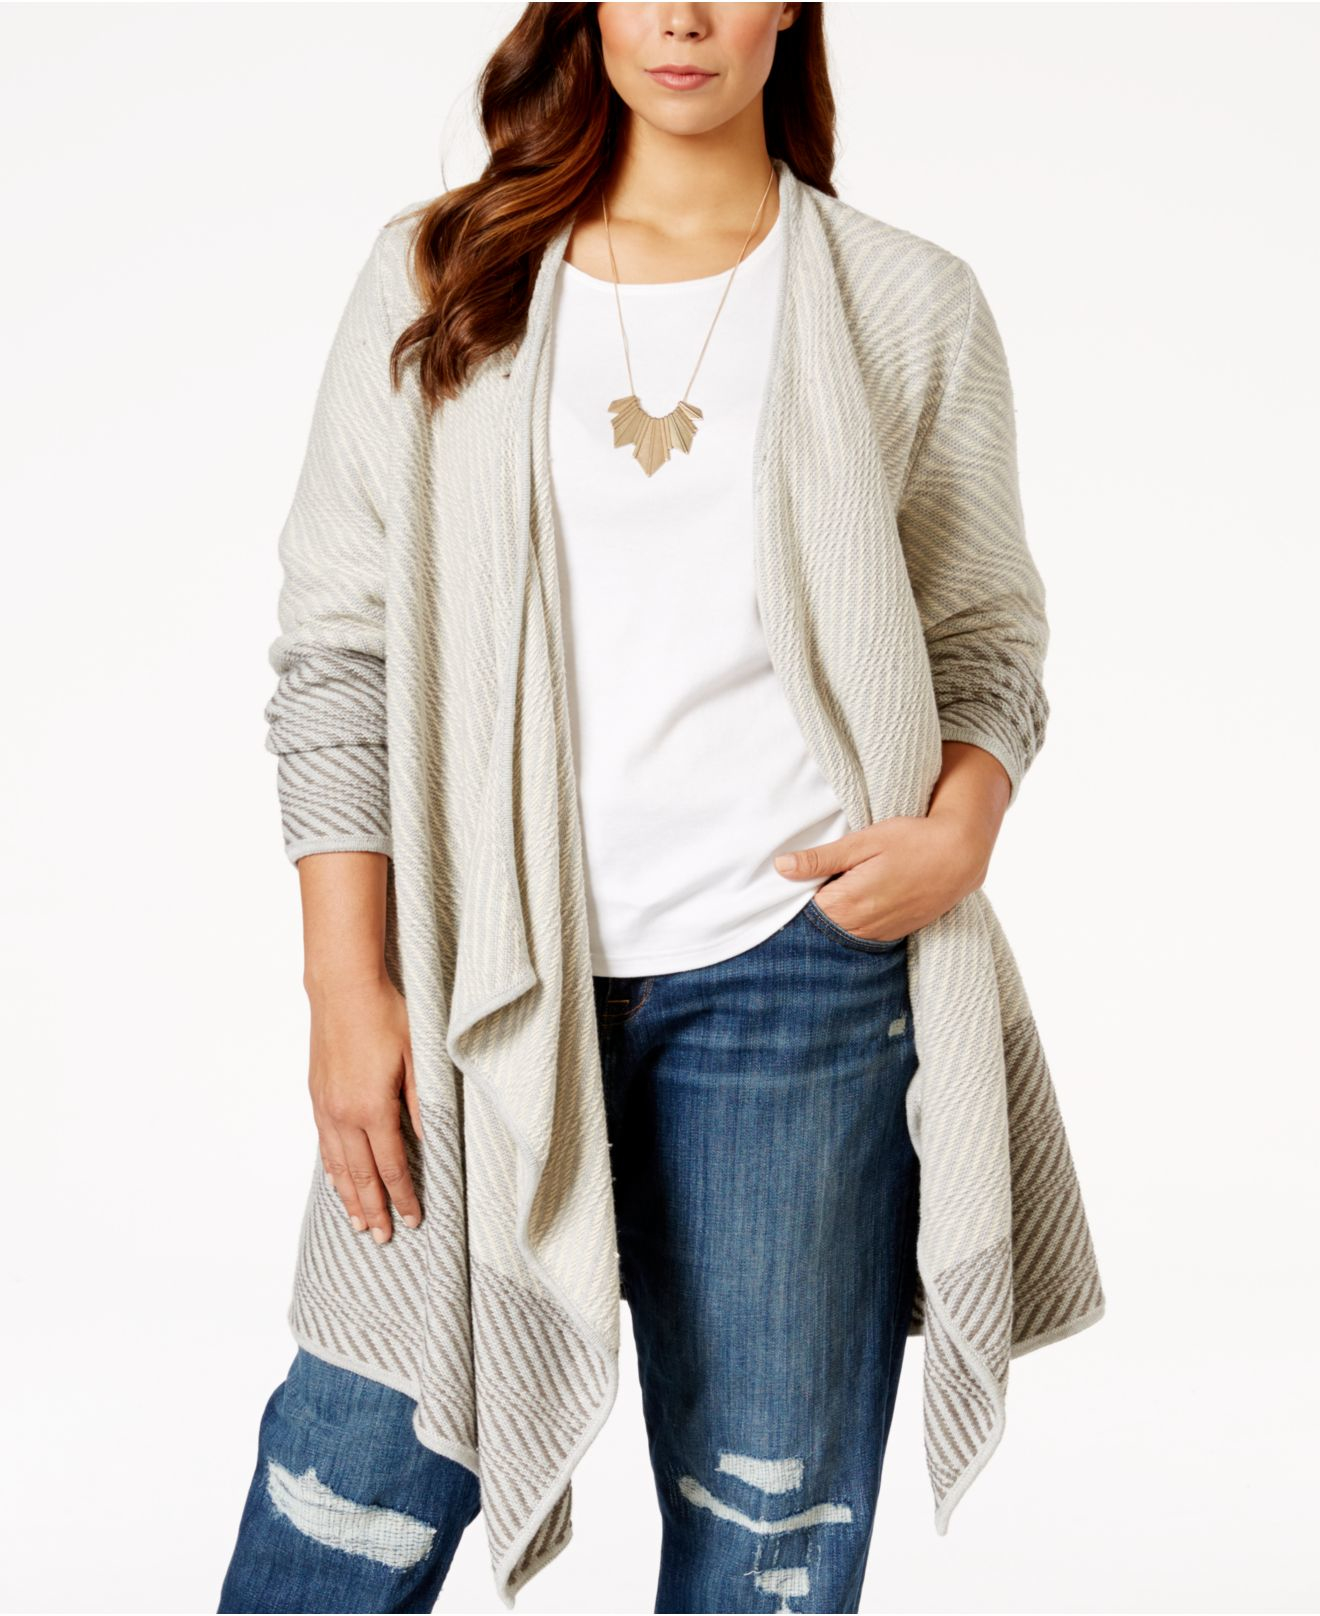 Lucky brand Plus Size Open-front Waterfall Cardigan in White | Lyst